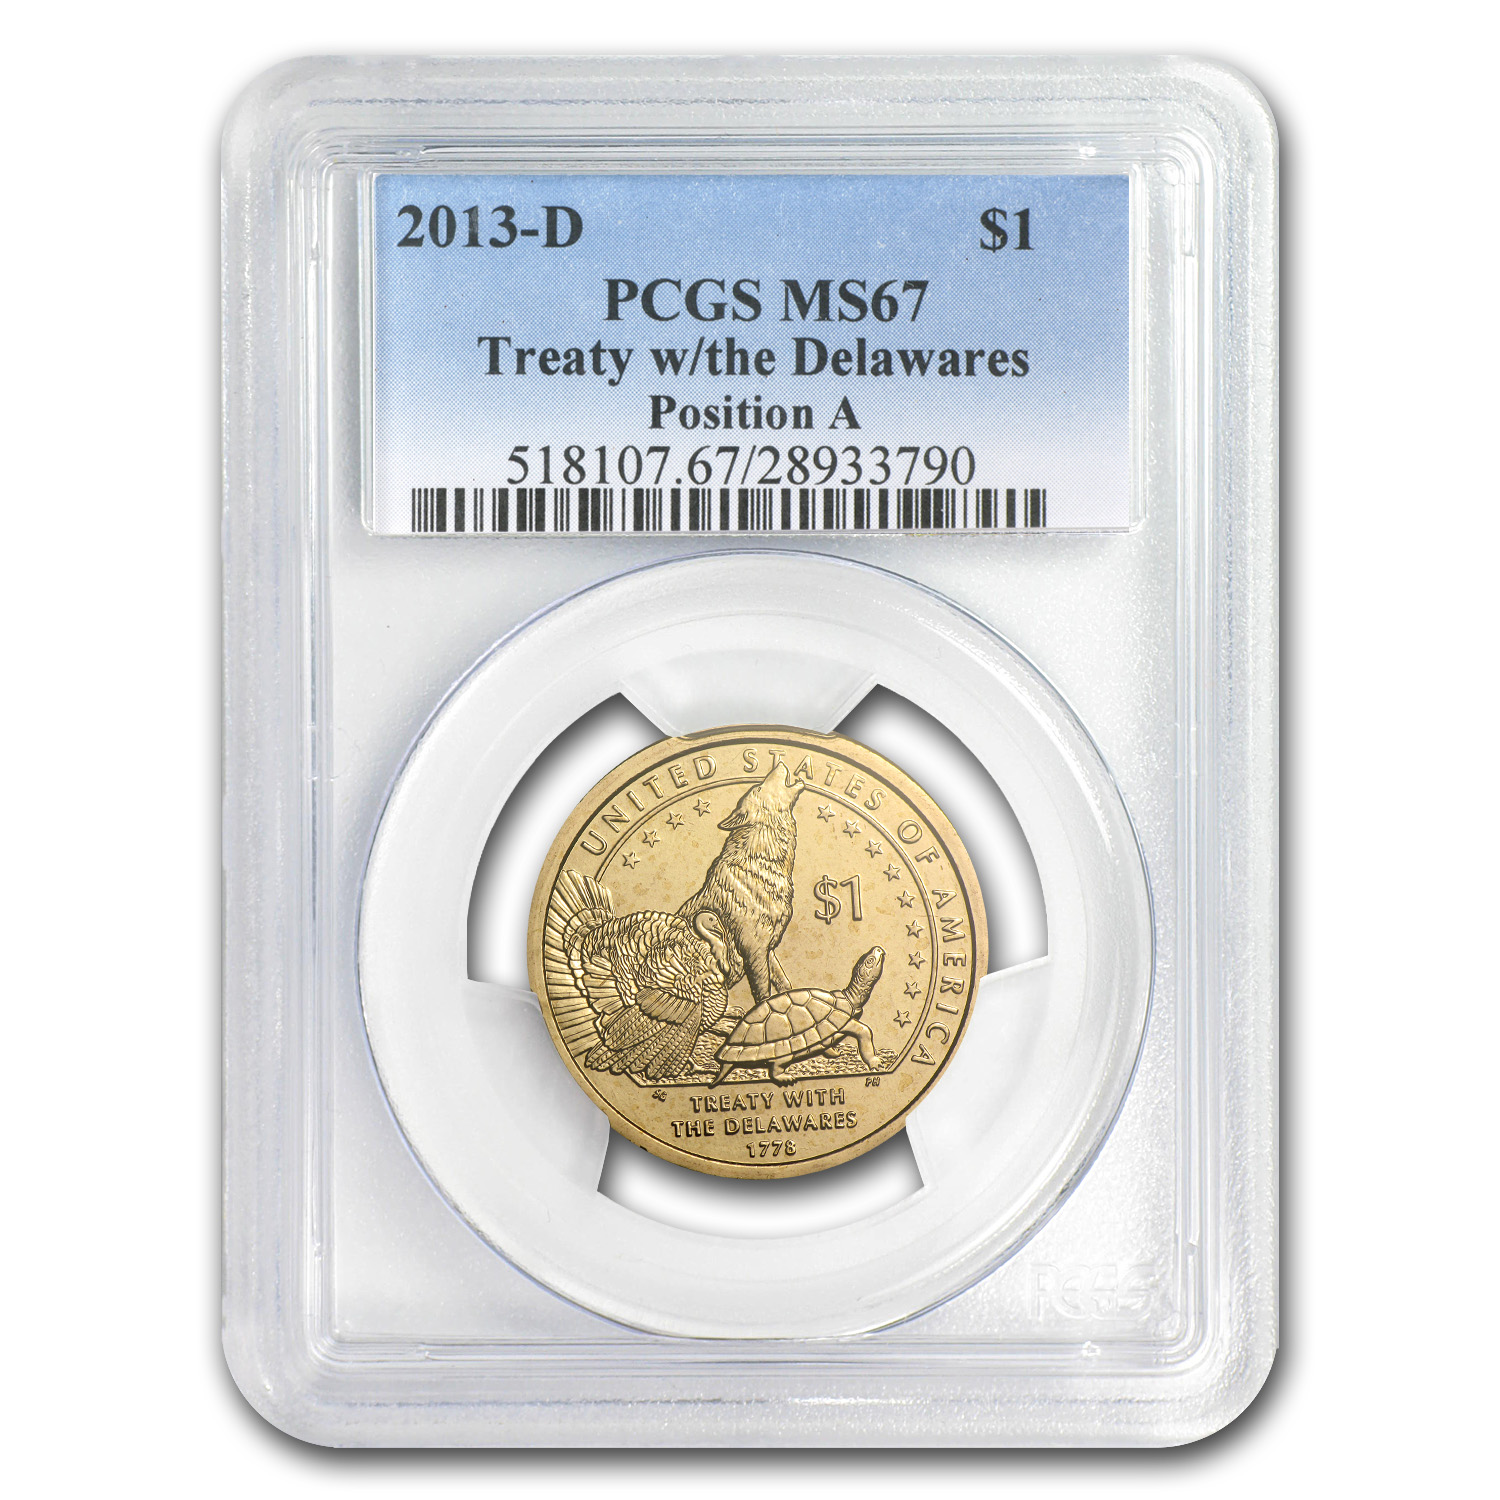 2013-D Native American Sacagawea Dollar Position A MS-67 PCGS